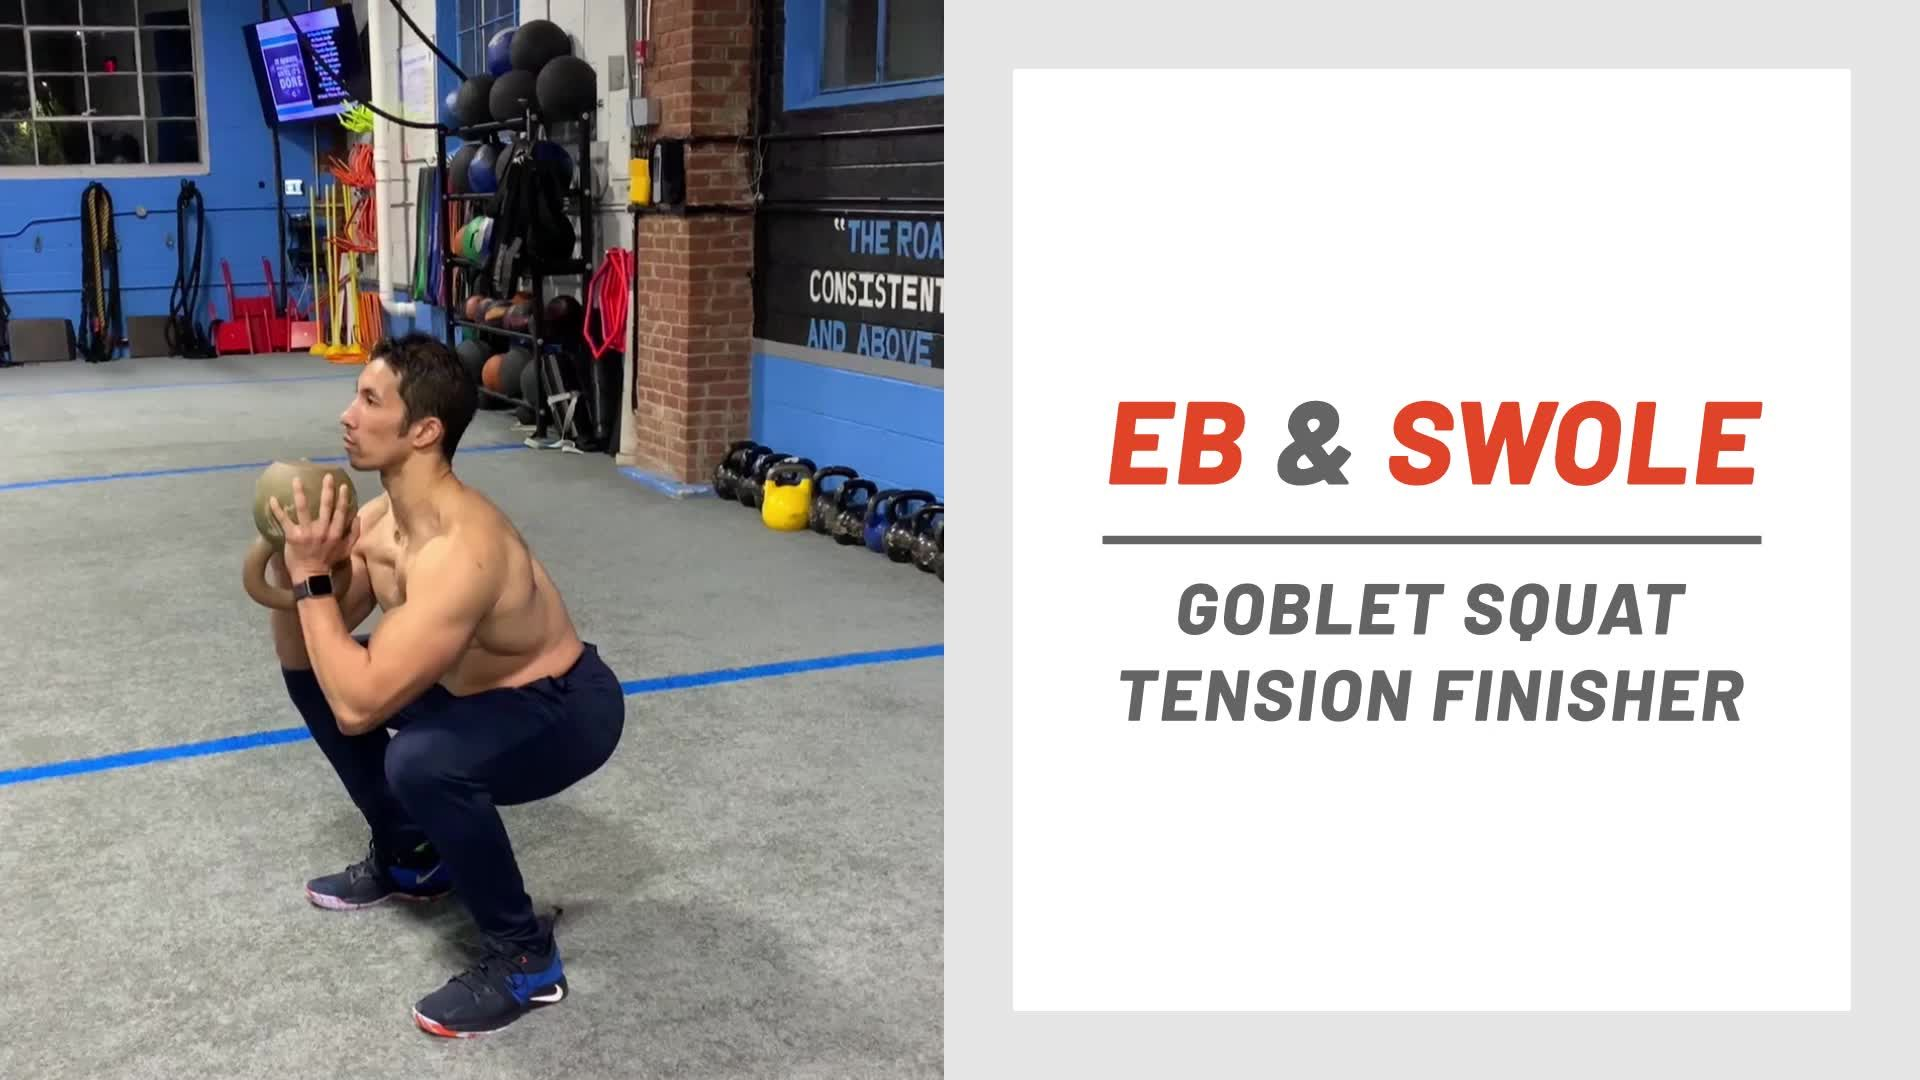 Finish Off Your Leg Day With This Killer Goblet Squat Series